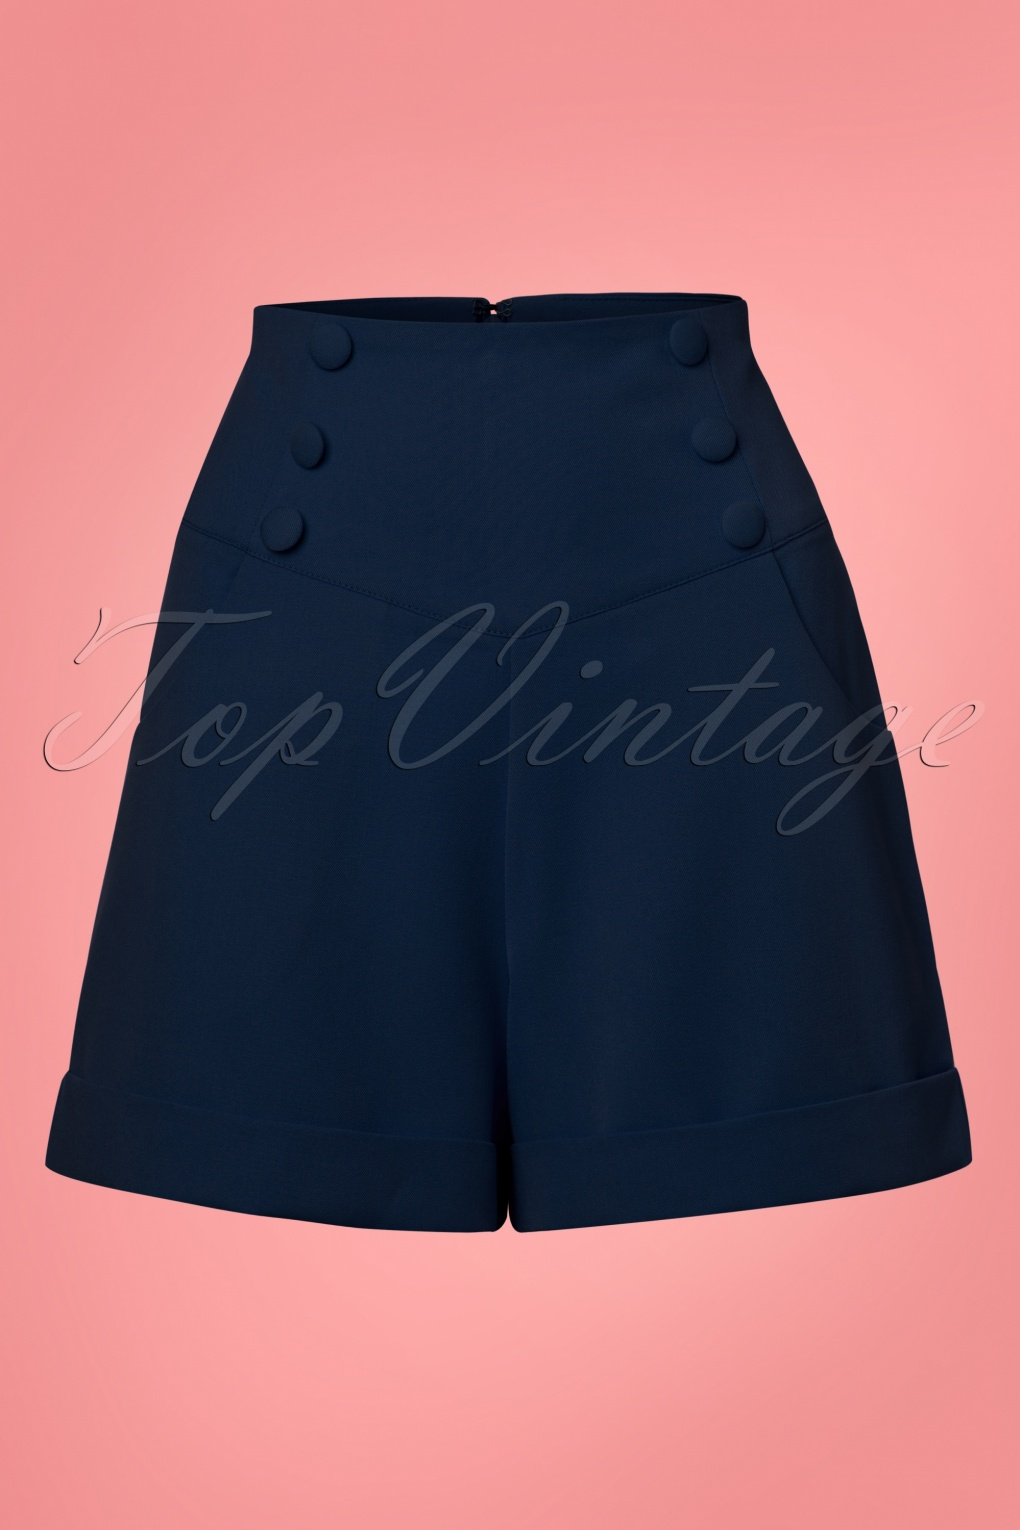 1950s Shorts History | Summer Clothing 50s Cute As A Button Shorts in Navy £32.86 AT vintagedancer.com